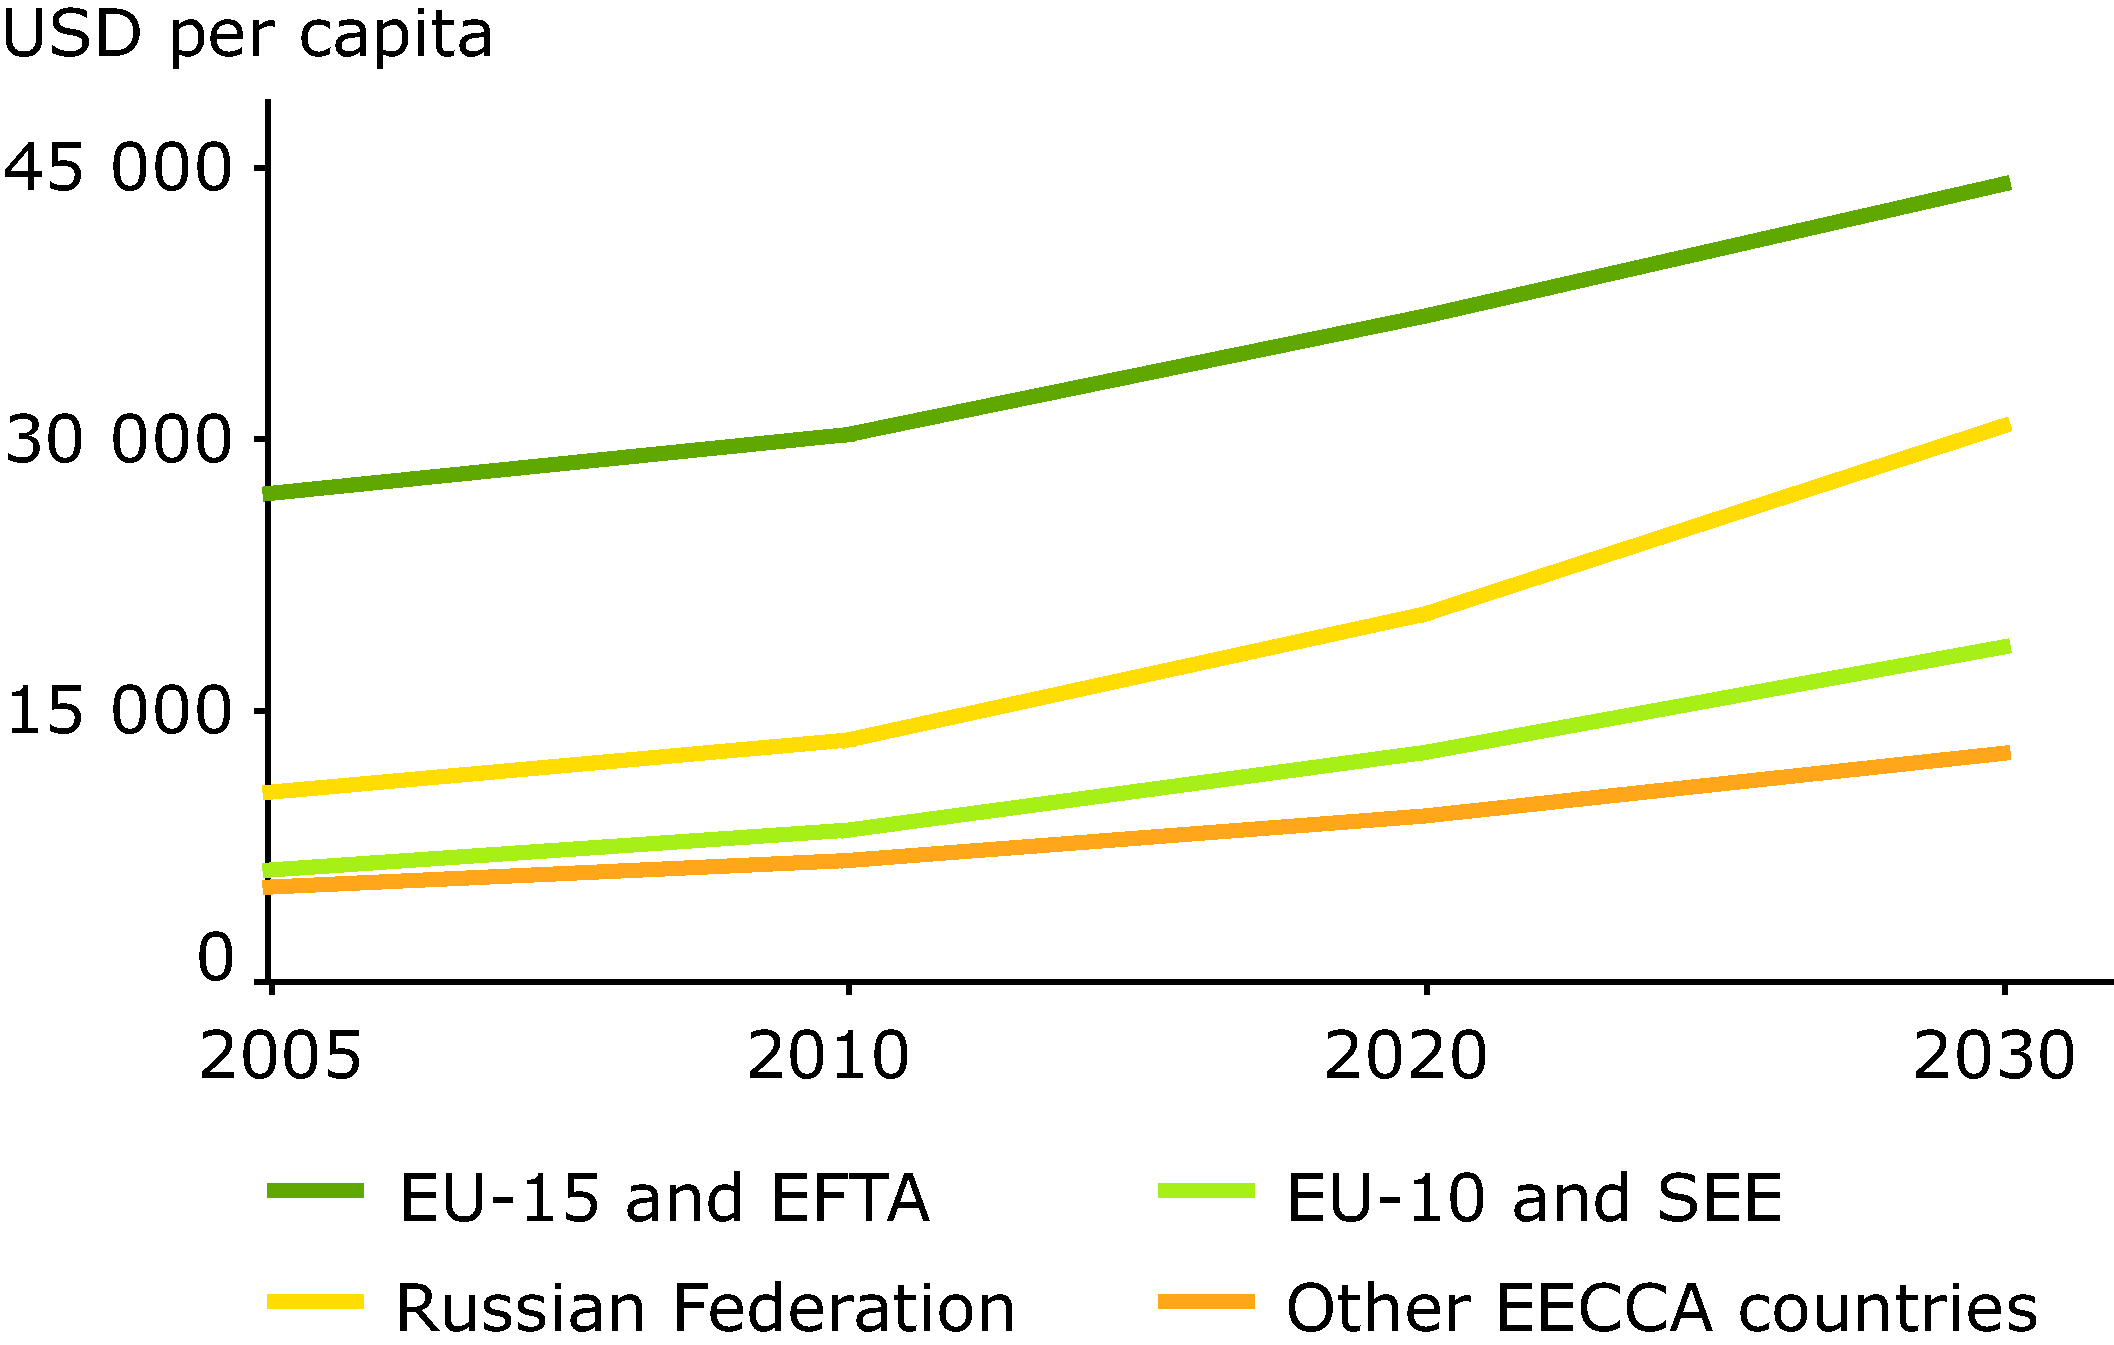 GDP projections, 2005 to 2030